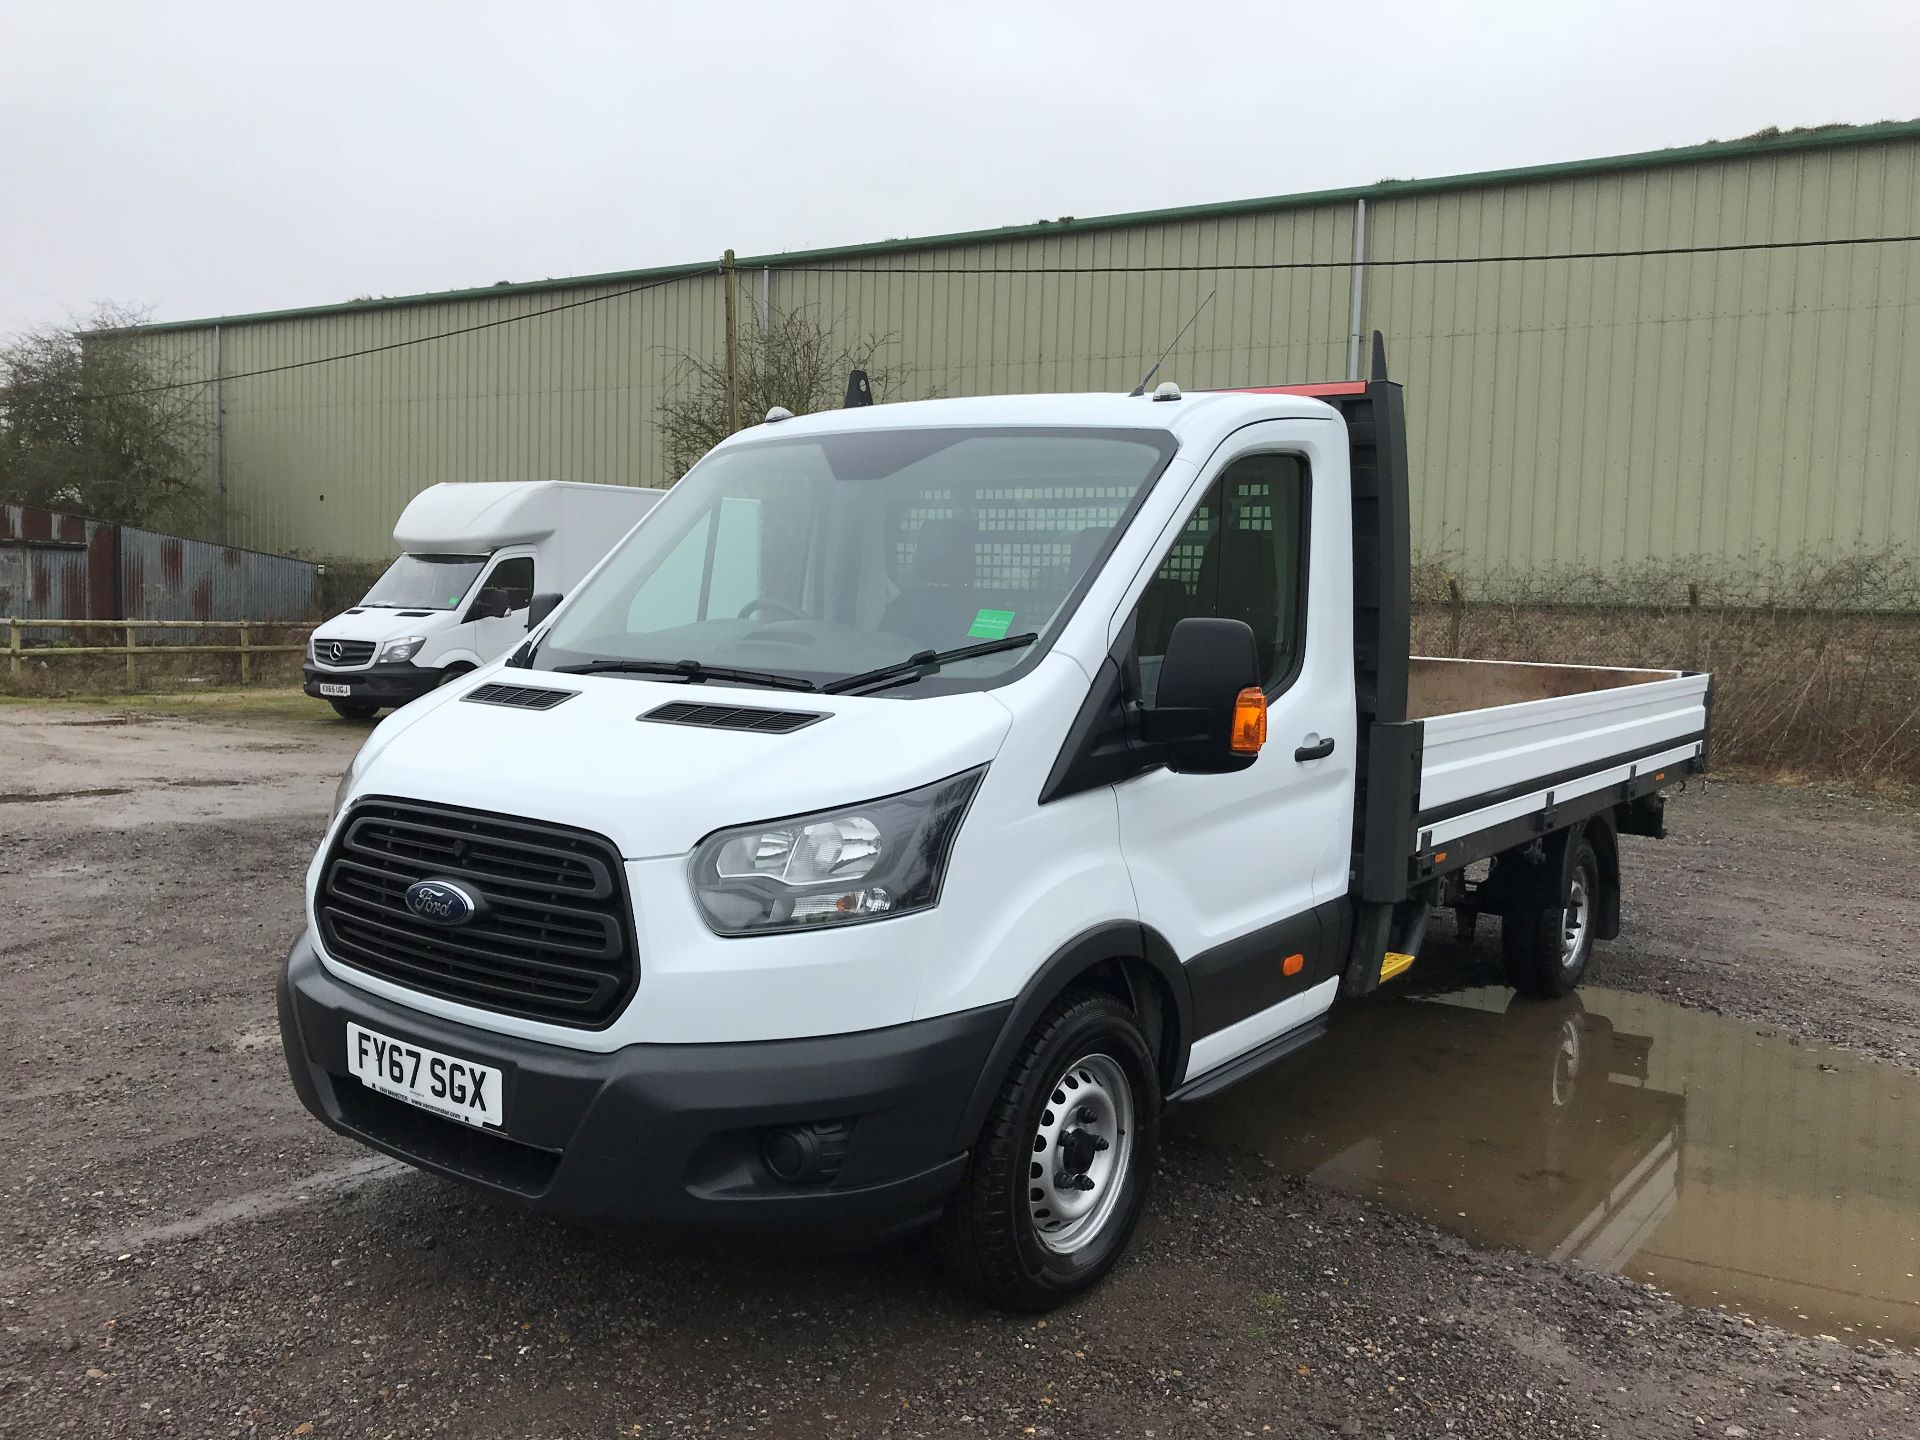 2017 Ford Transit 350 L4 DROP SIDE 130PS EURO 6 (FY67SGX) Image 3